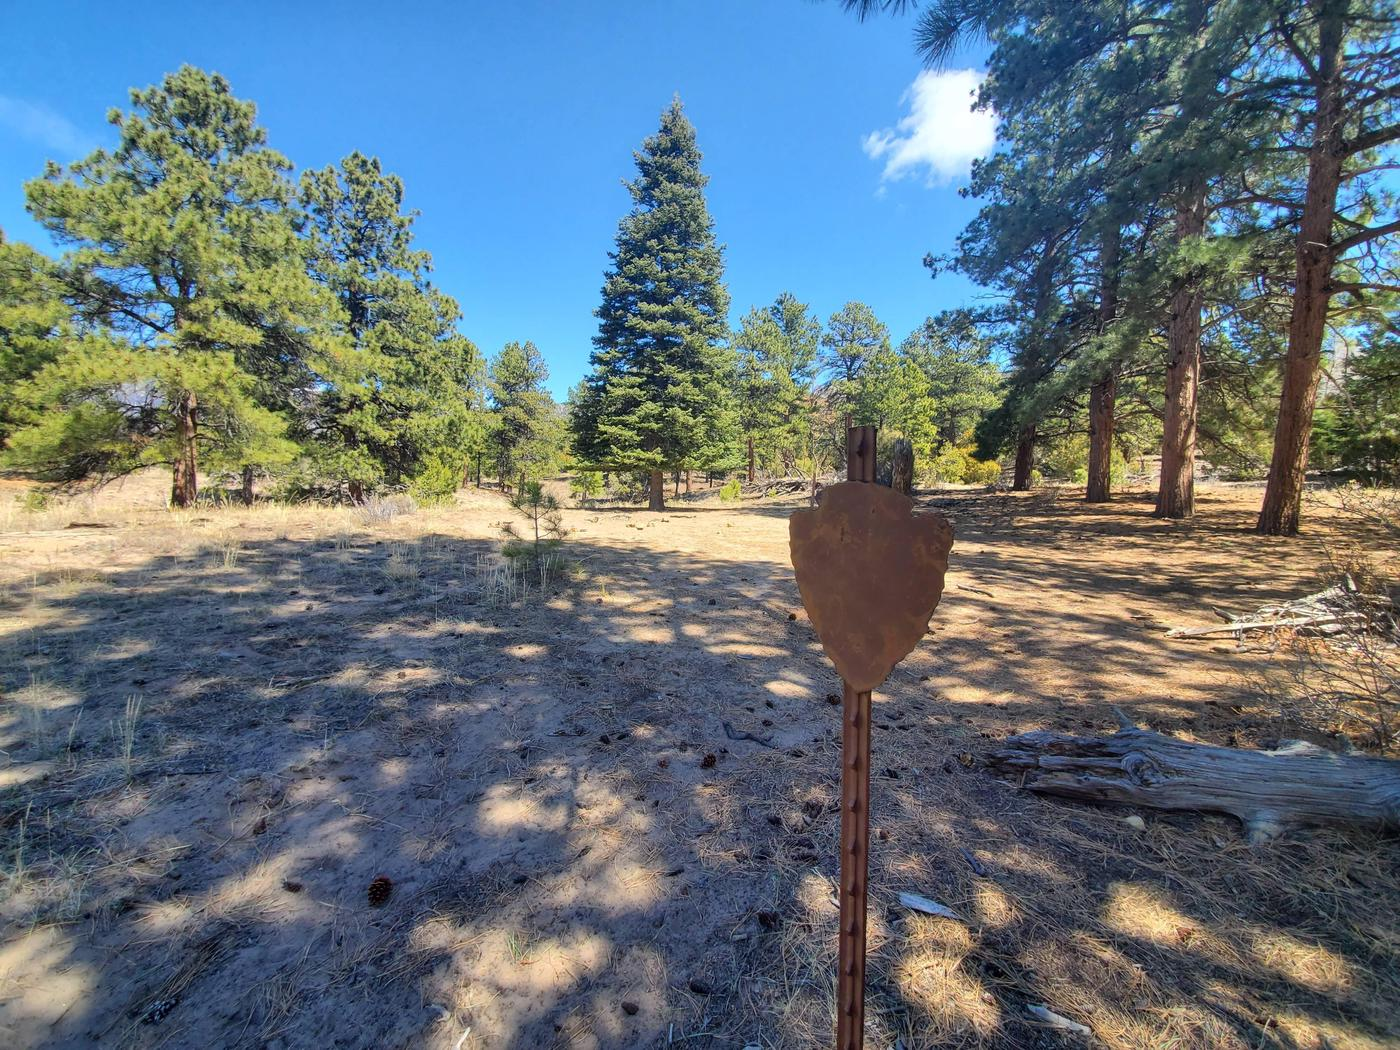 A flat sandy area surrounded by pine trees, with a metal sign in the middle marking the Escape Dunes campsite.Escape Dunes is one of the designated backcountry sites, marked with a metal arrowhead sign.